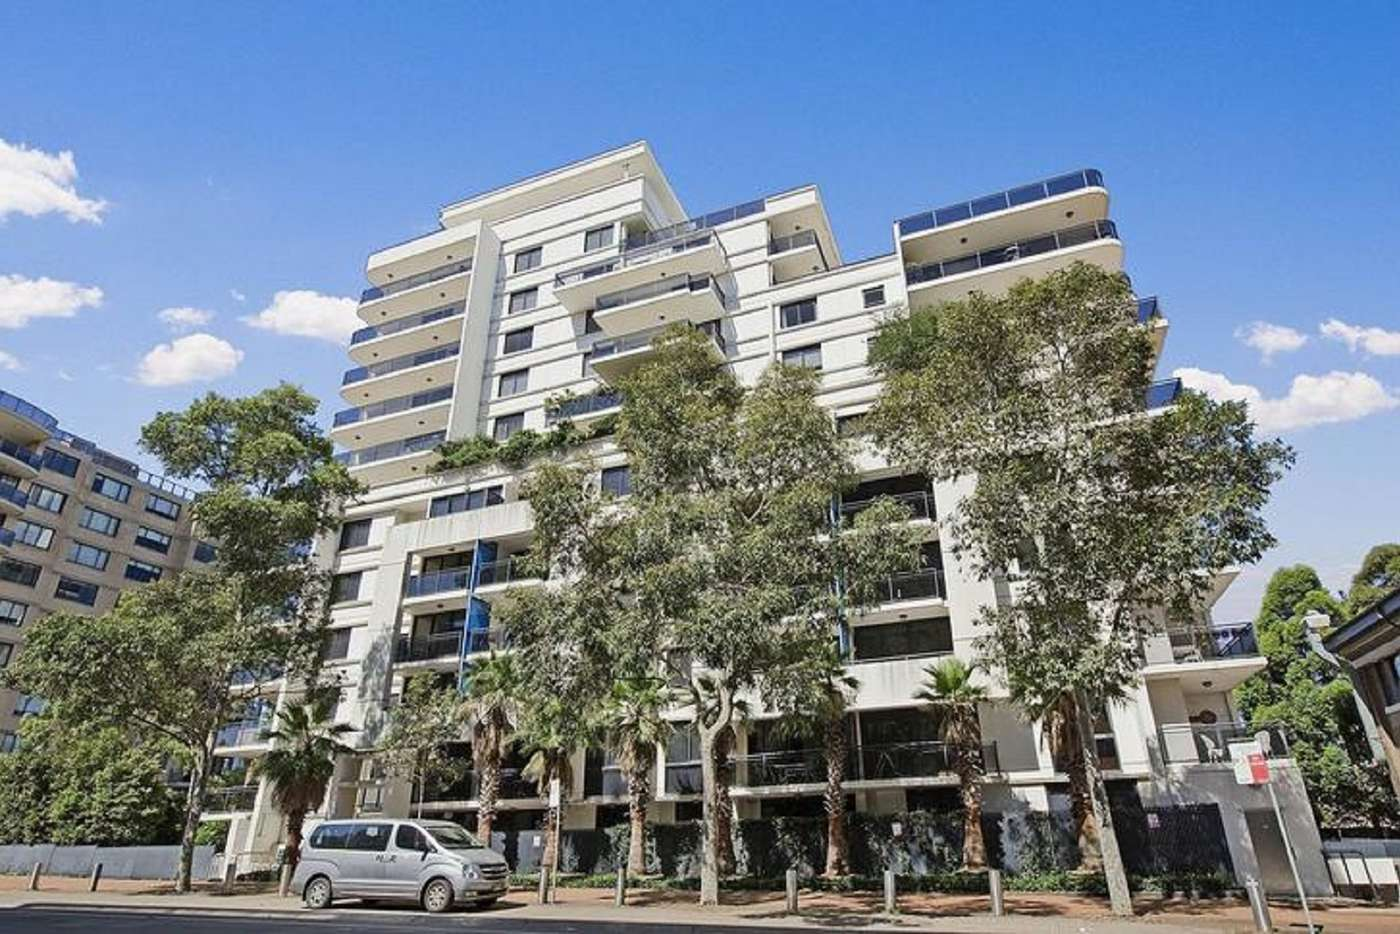 Main view of Homely apartment listing, 25/13 Herbert Street, St Leonards NSW 2065